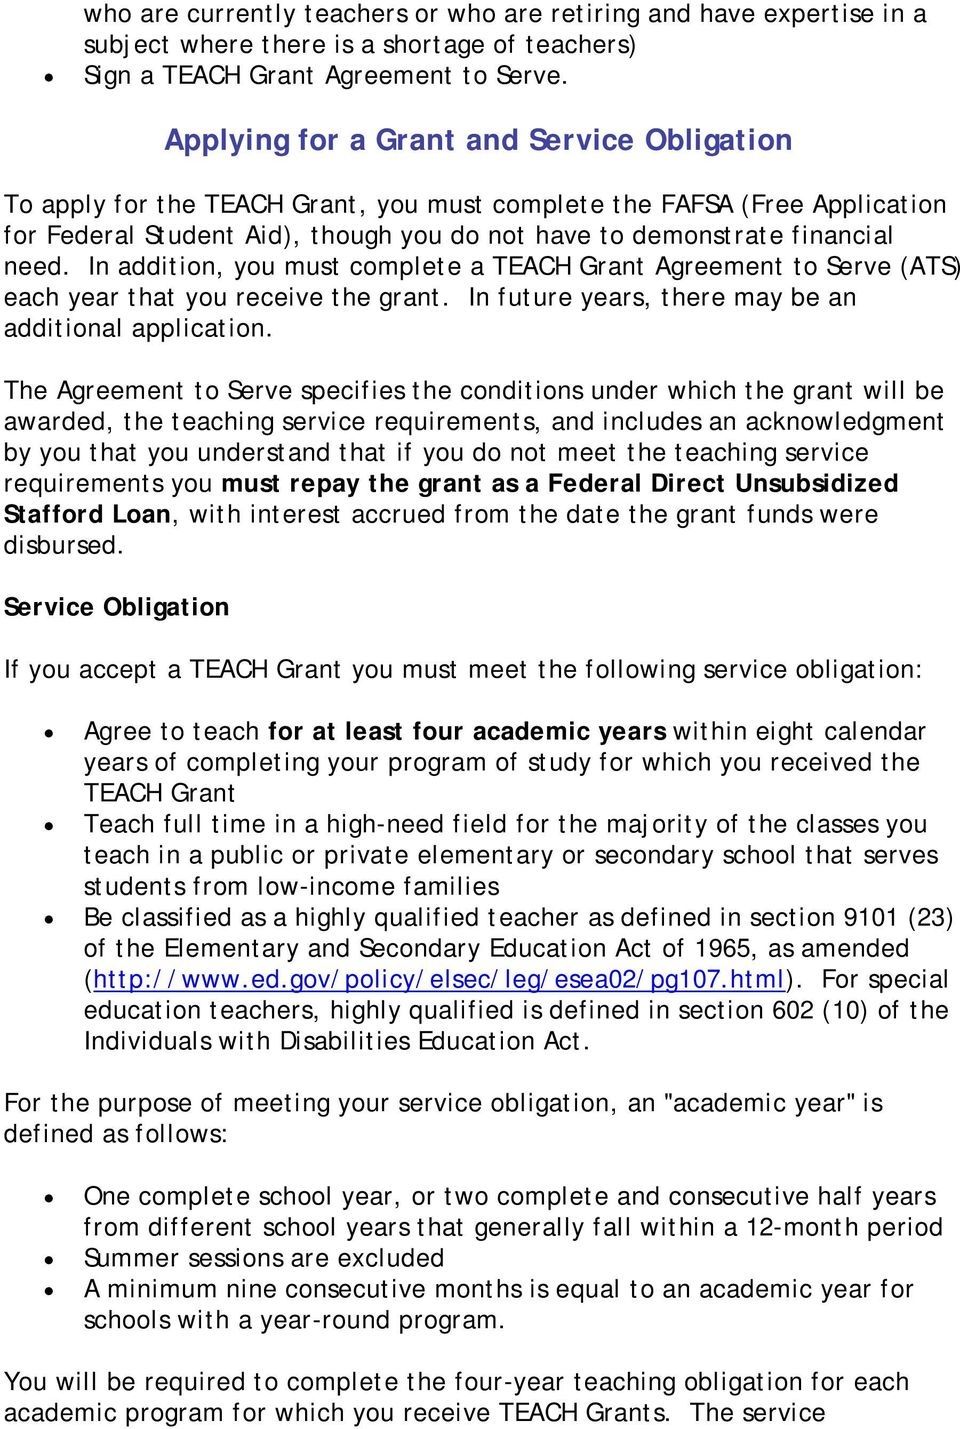 In addition, you must complete a TEACH Grant Agreement to Serve (ATS) each year that you receive the grant. In future years, there may be an additional application.